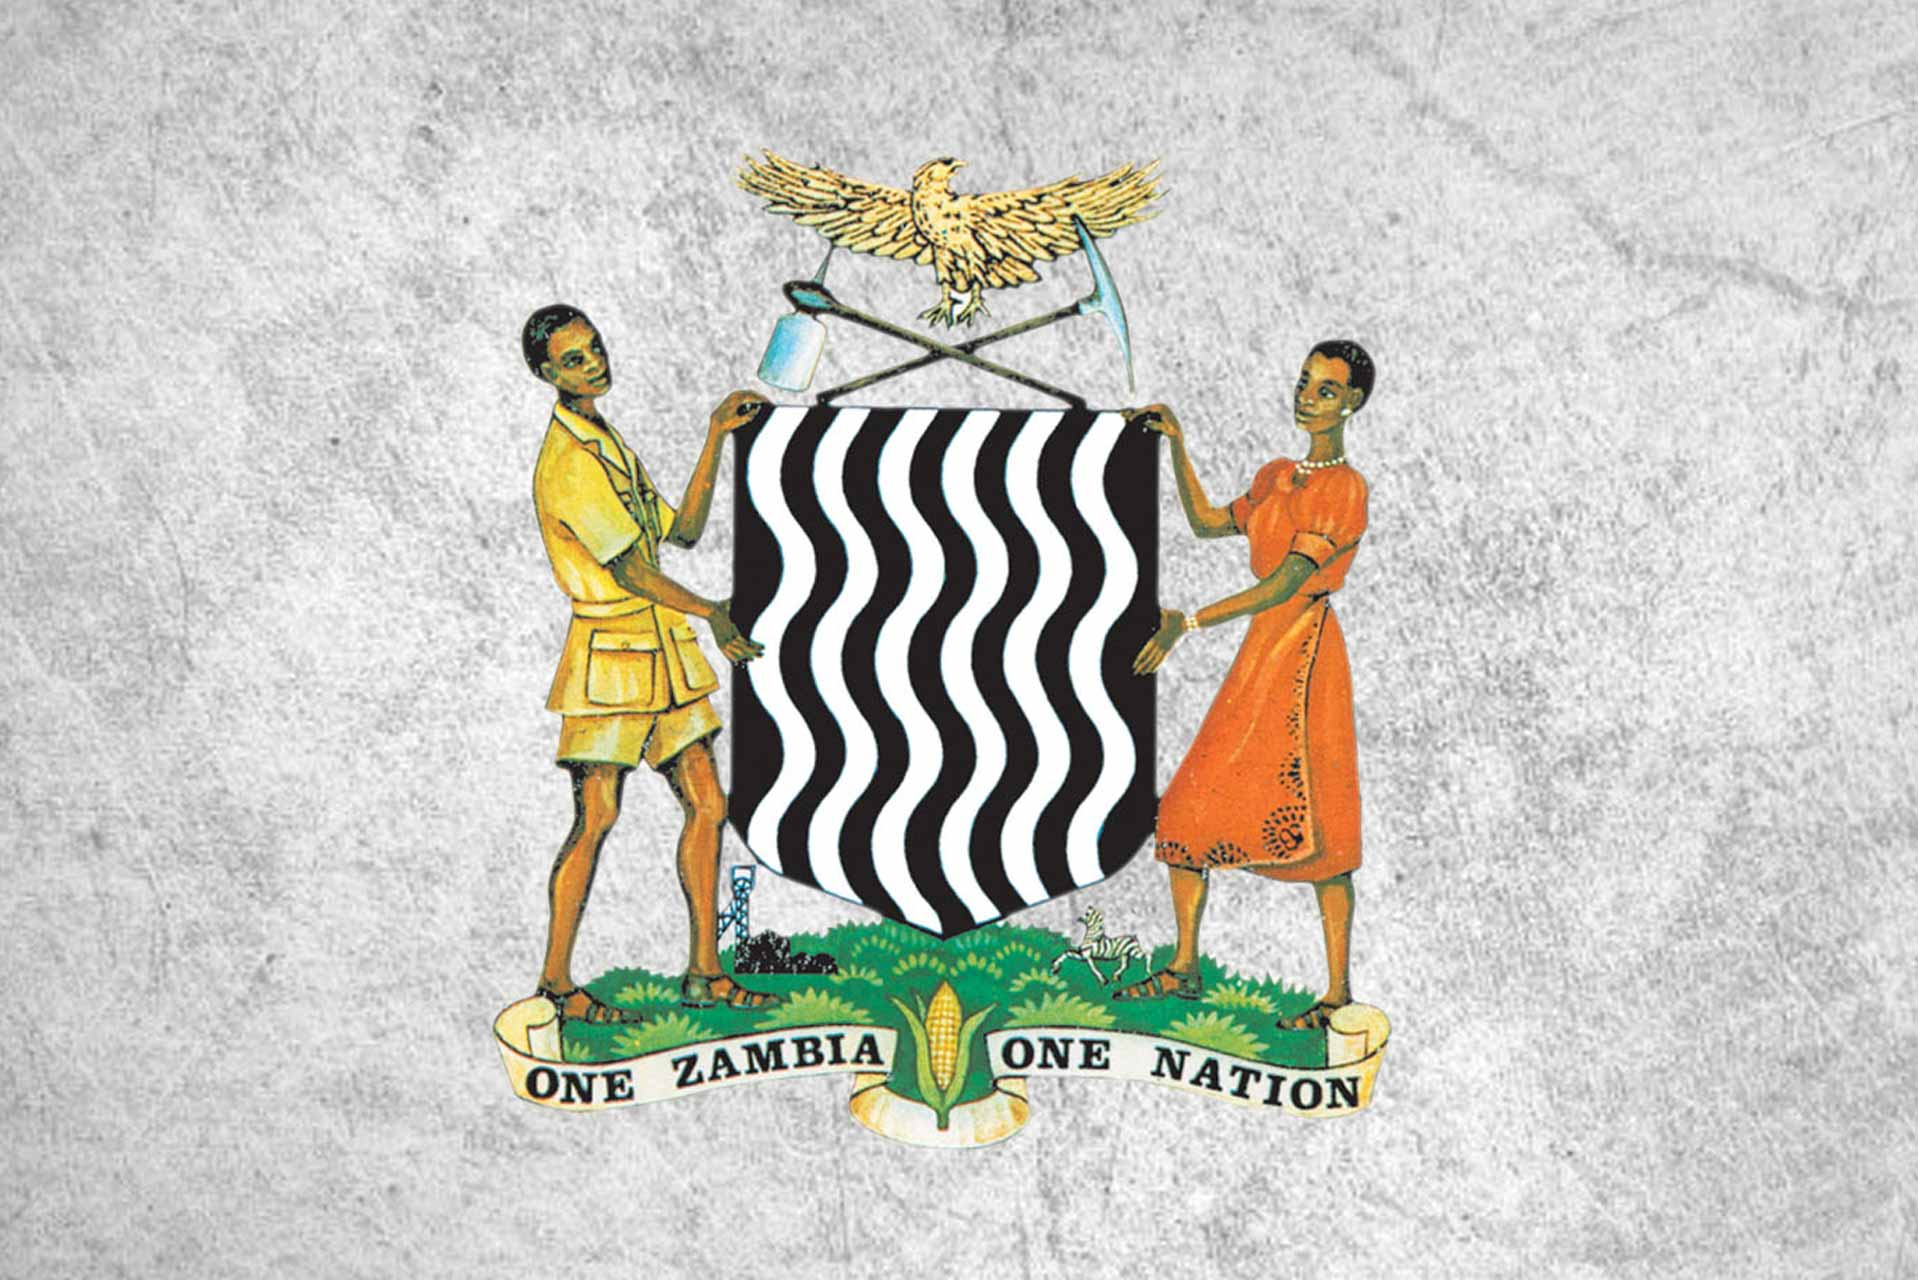 Ministry of Chiefs and Traditions